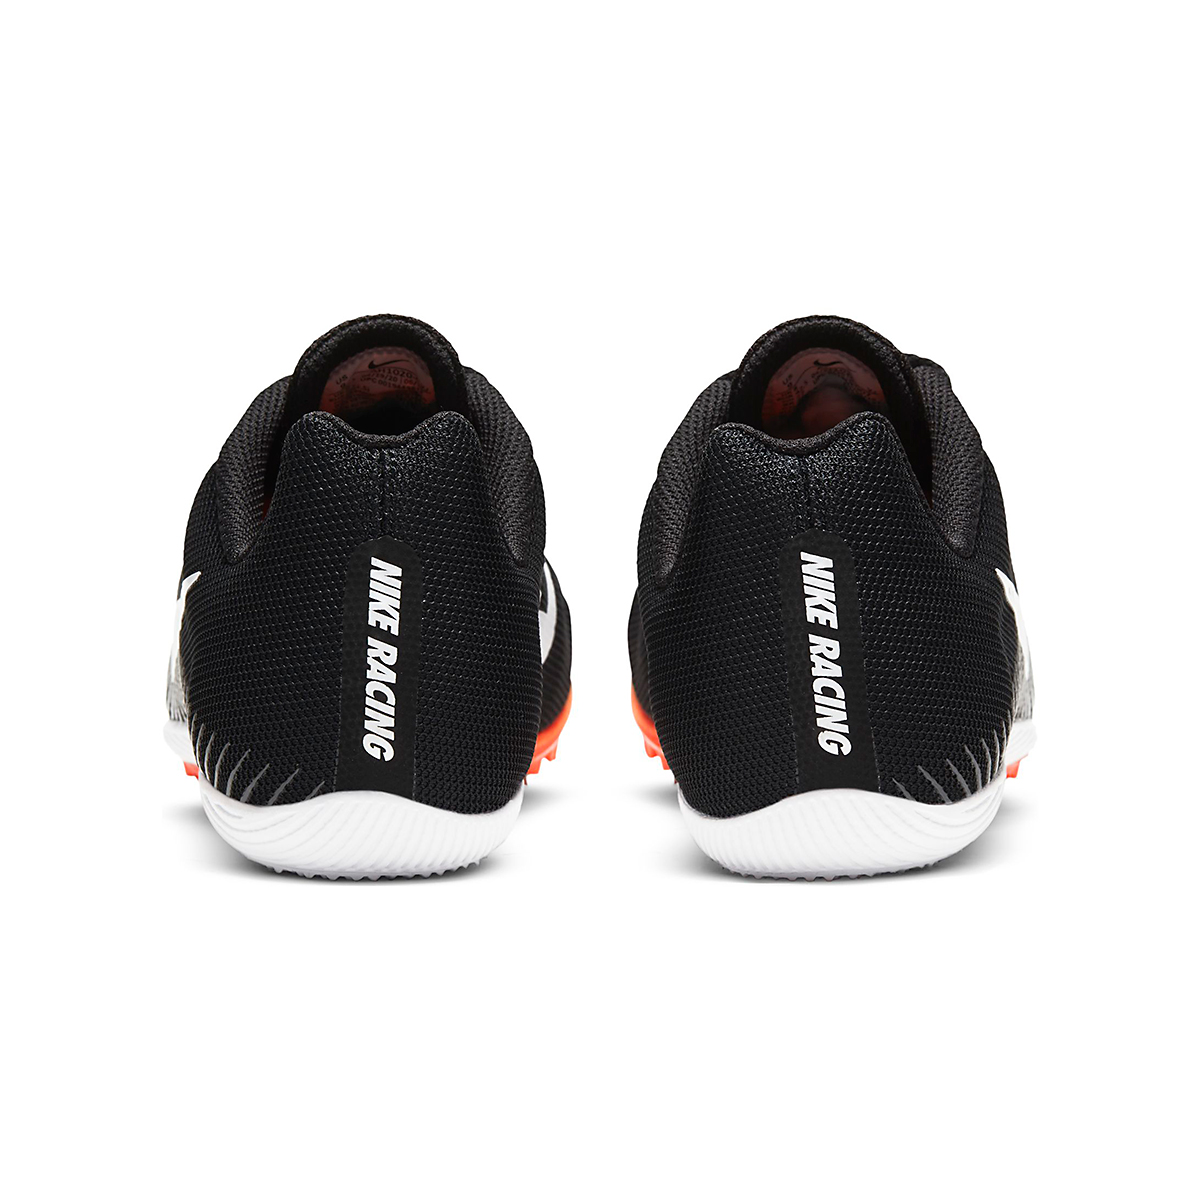 Nike Zoom Rival M 9 Track Spikes - Color: Black/White/Iron Grey/Hyper Crimson - Size: M4/W5.5 - Width: Regular, Black/White/Iron Grey/Hyper Crimson, large, image 4